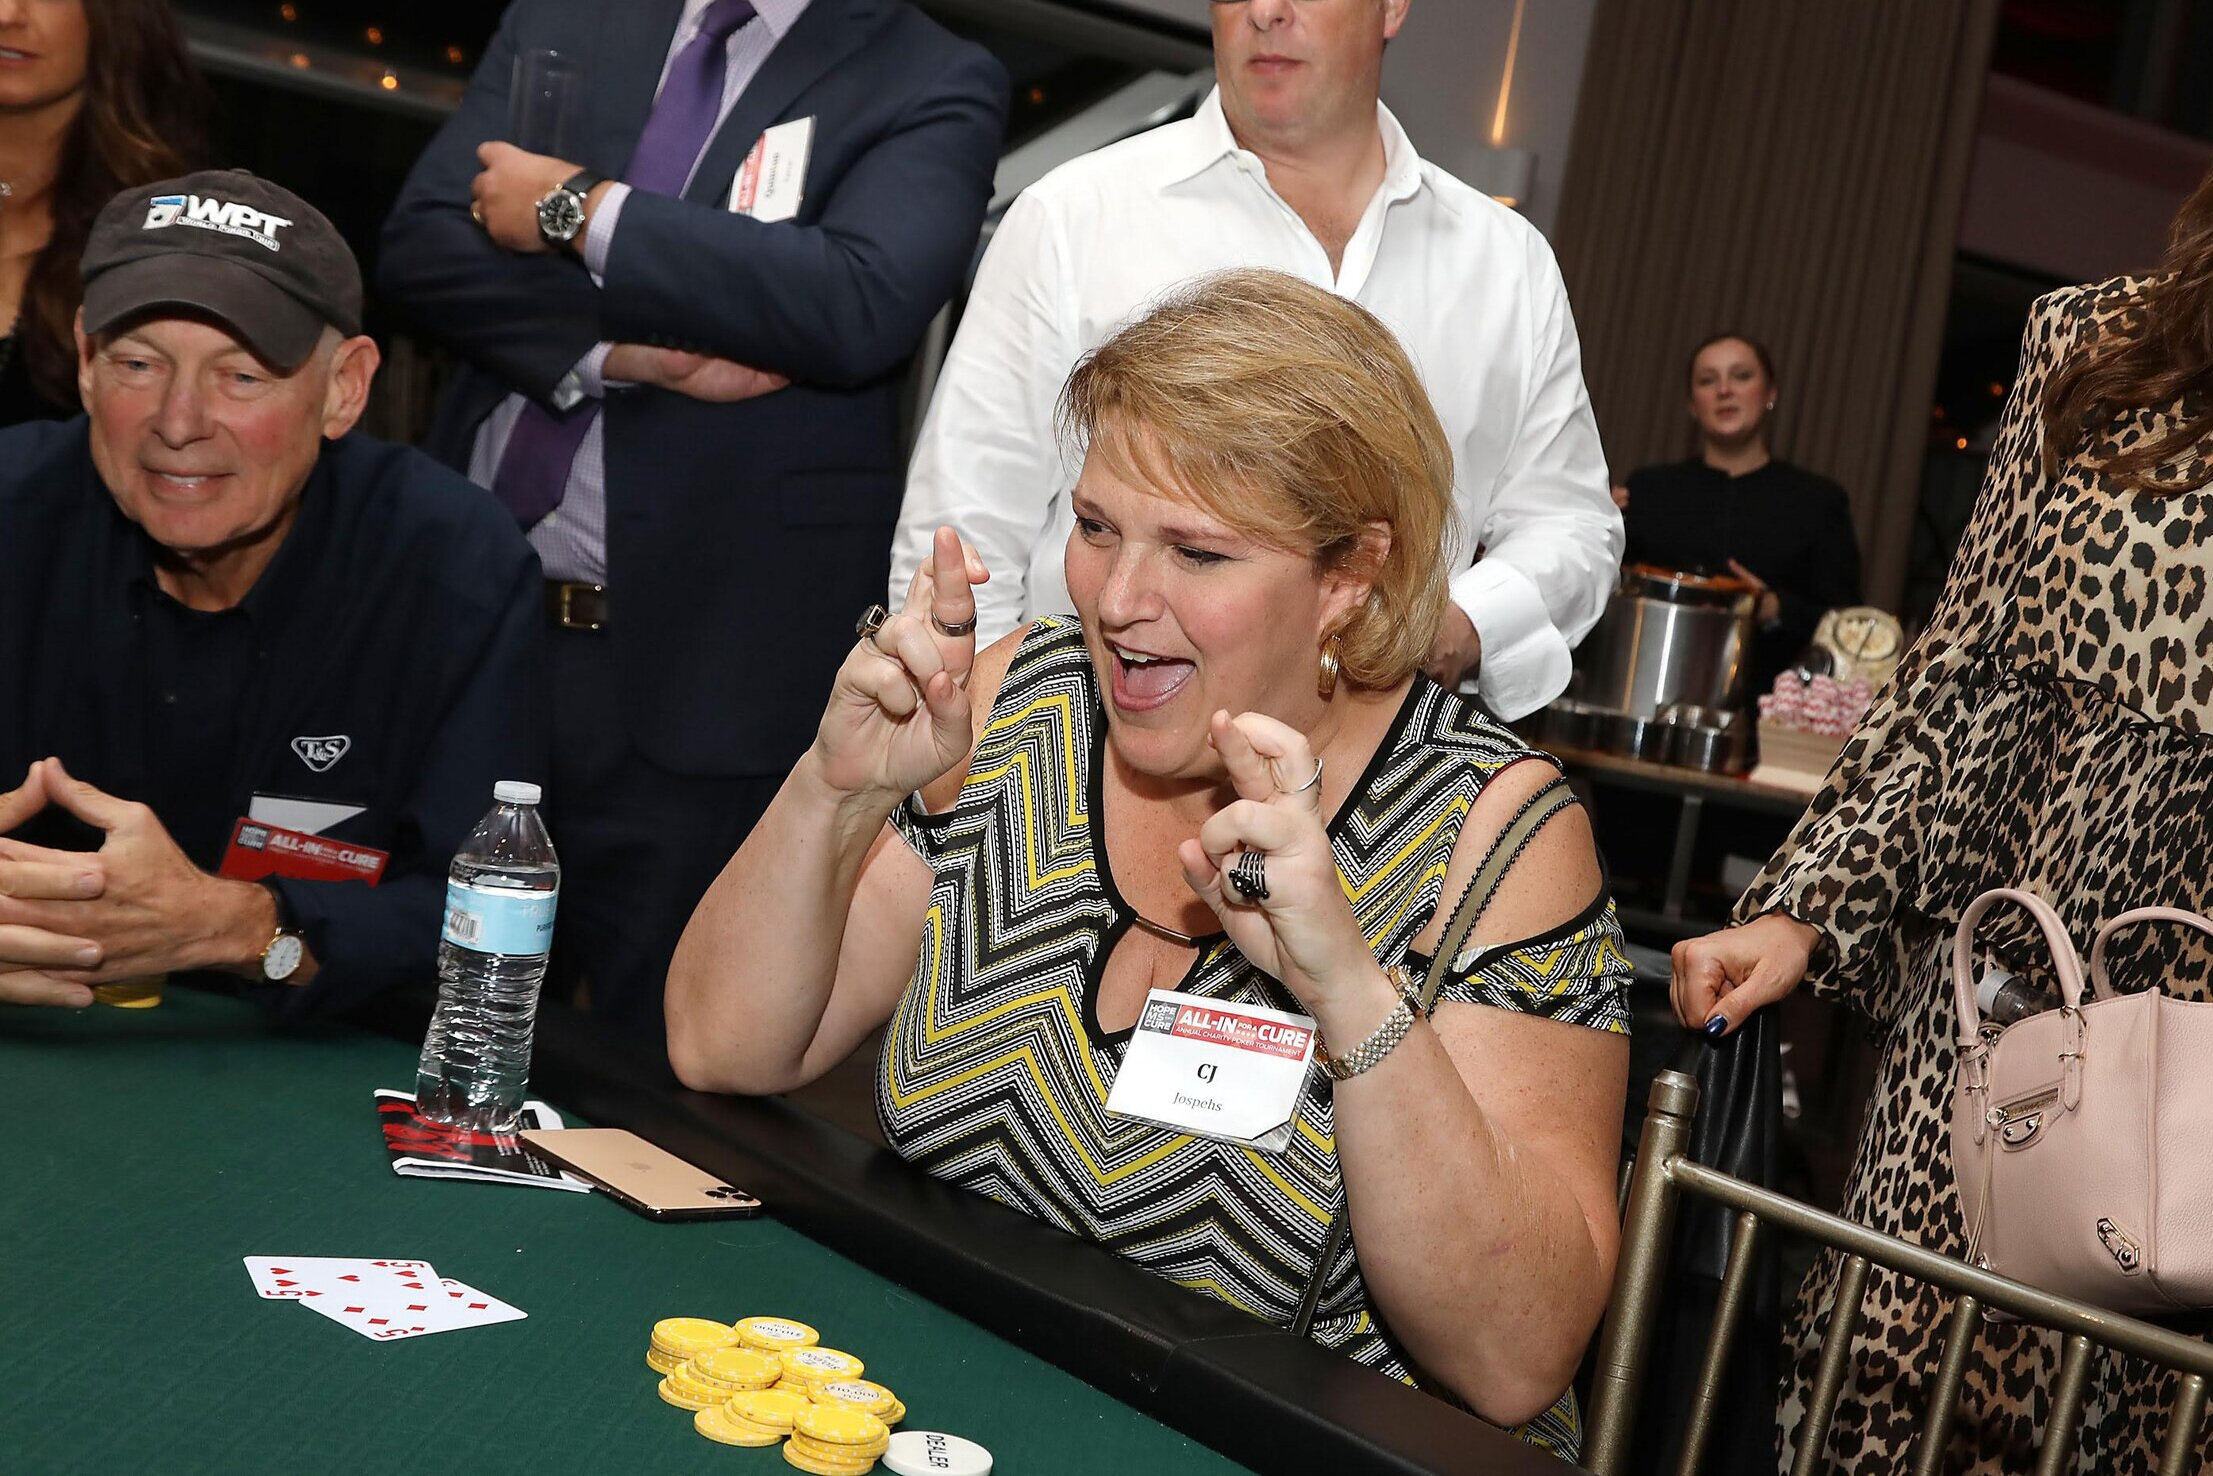 2019 Poker Gallery - Click Here to View